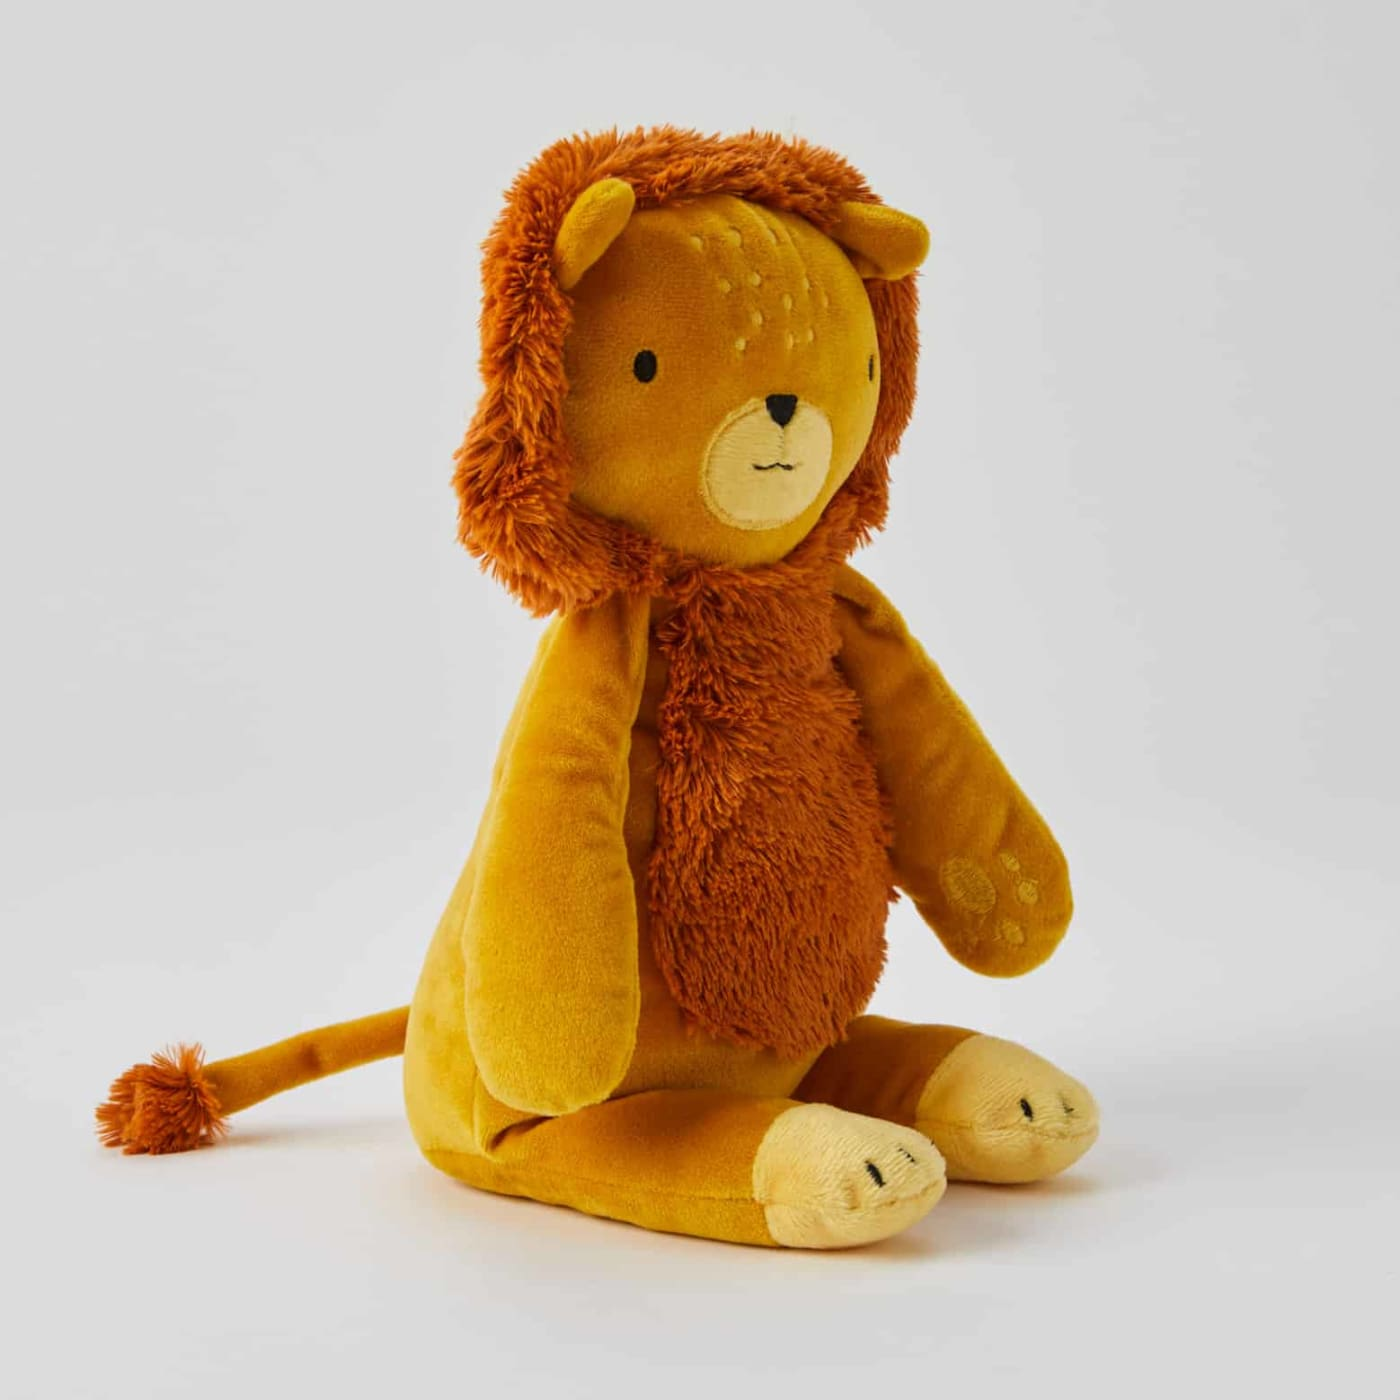 Nordic Kids Plush Toy - Edgar Lion - 38cm / Lion - TOYS & PLAY - PLUSH TOYS